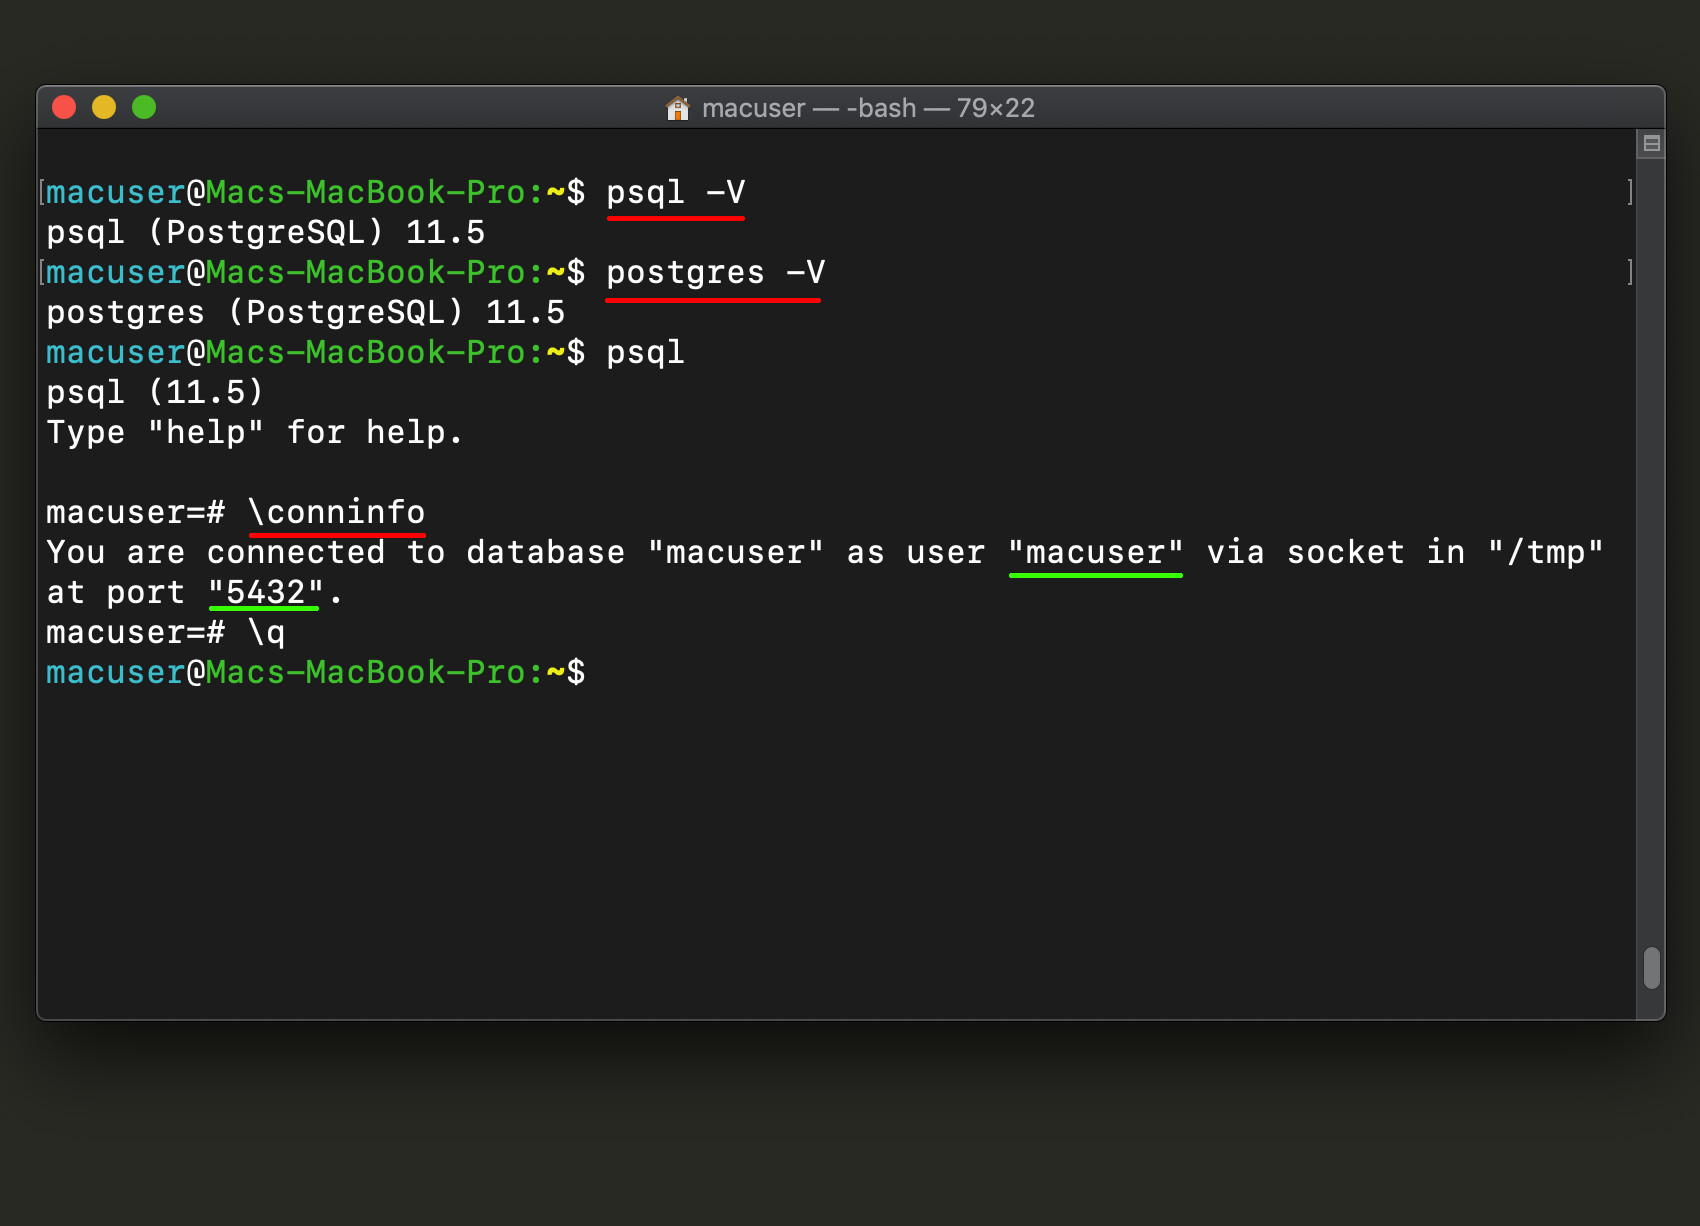 psql and Postgres version numbers in a terminal window